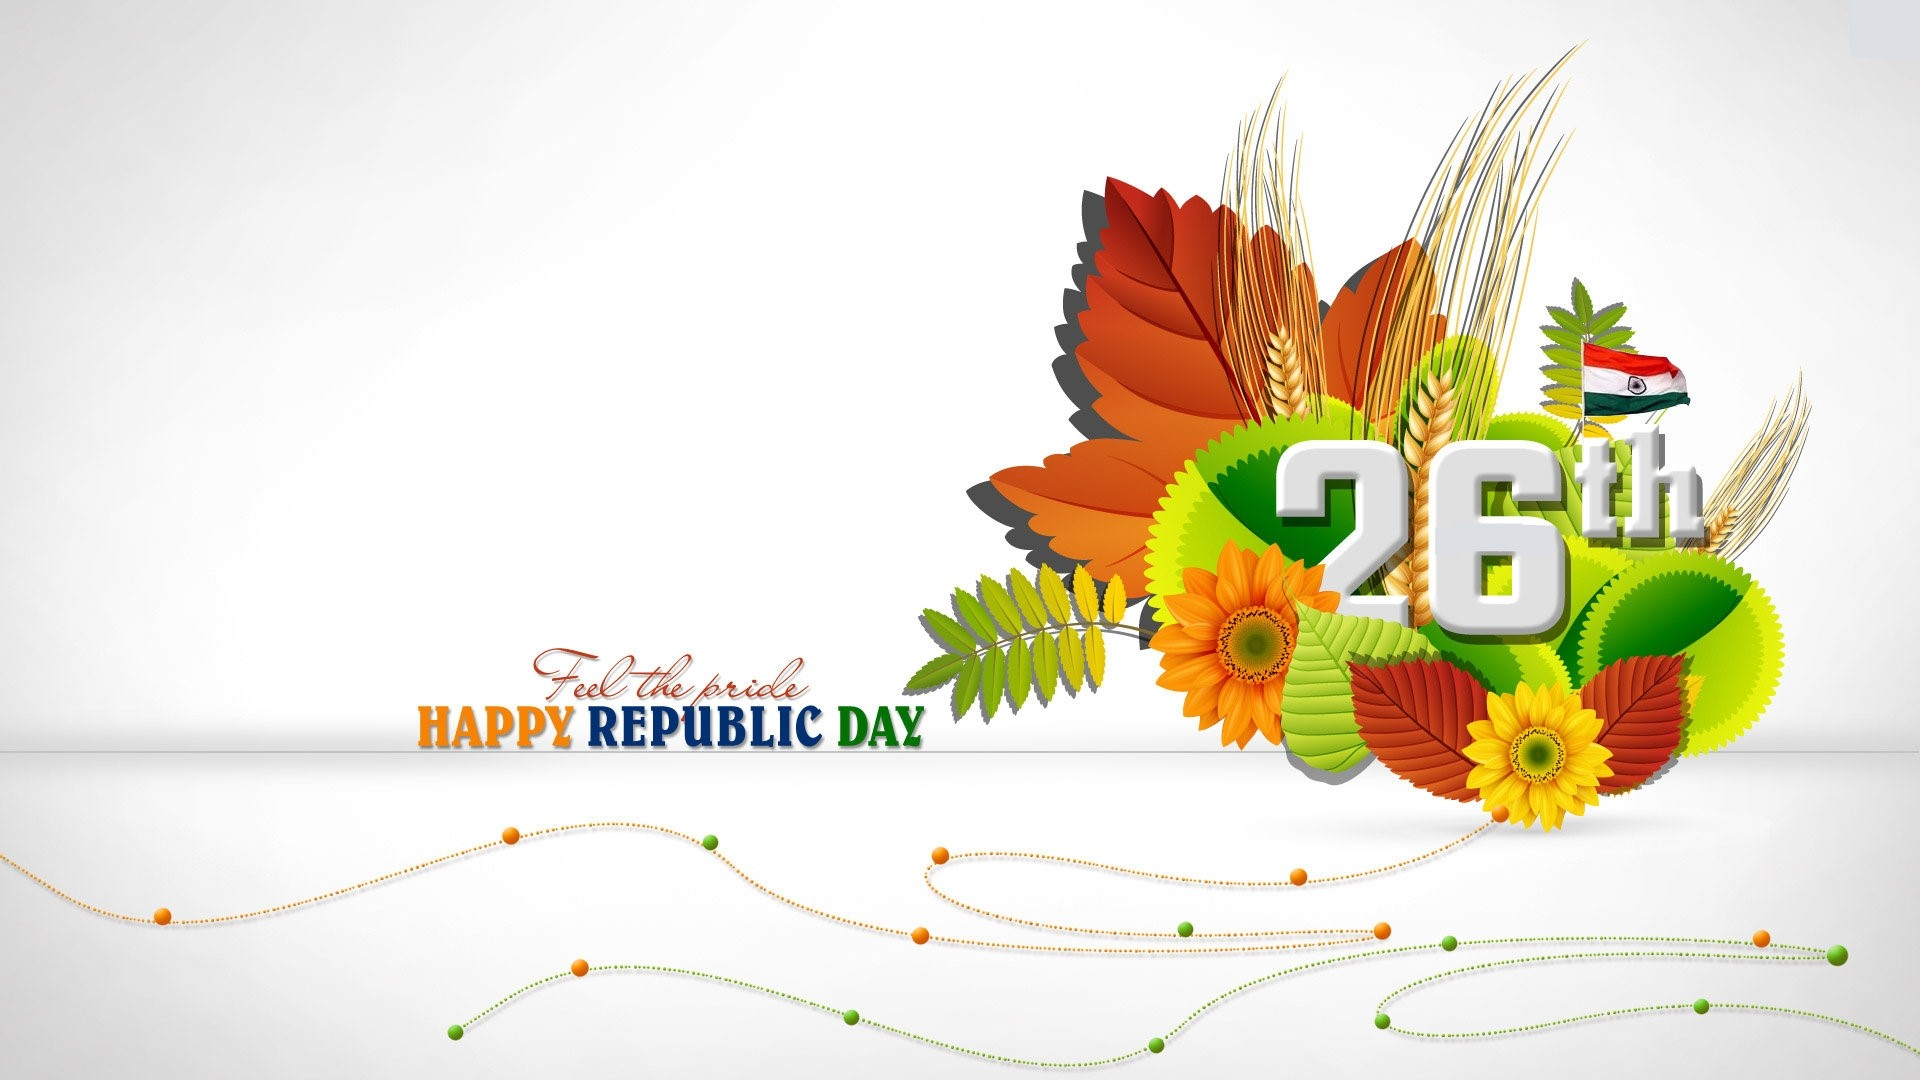 Happy Republic Day 2018 HD Wallpaper & Images